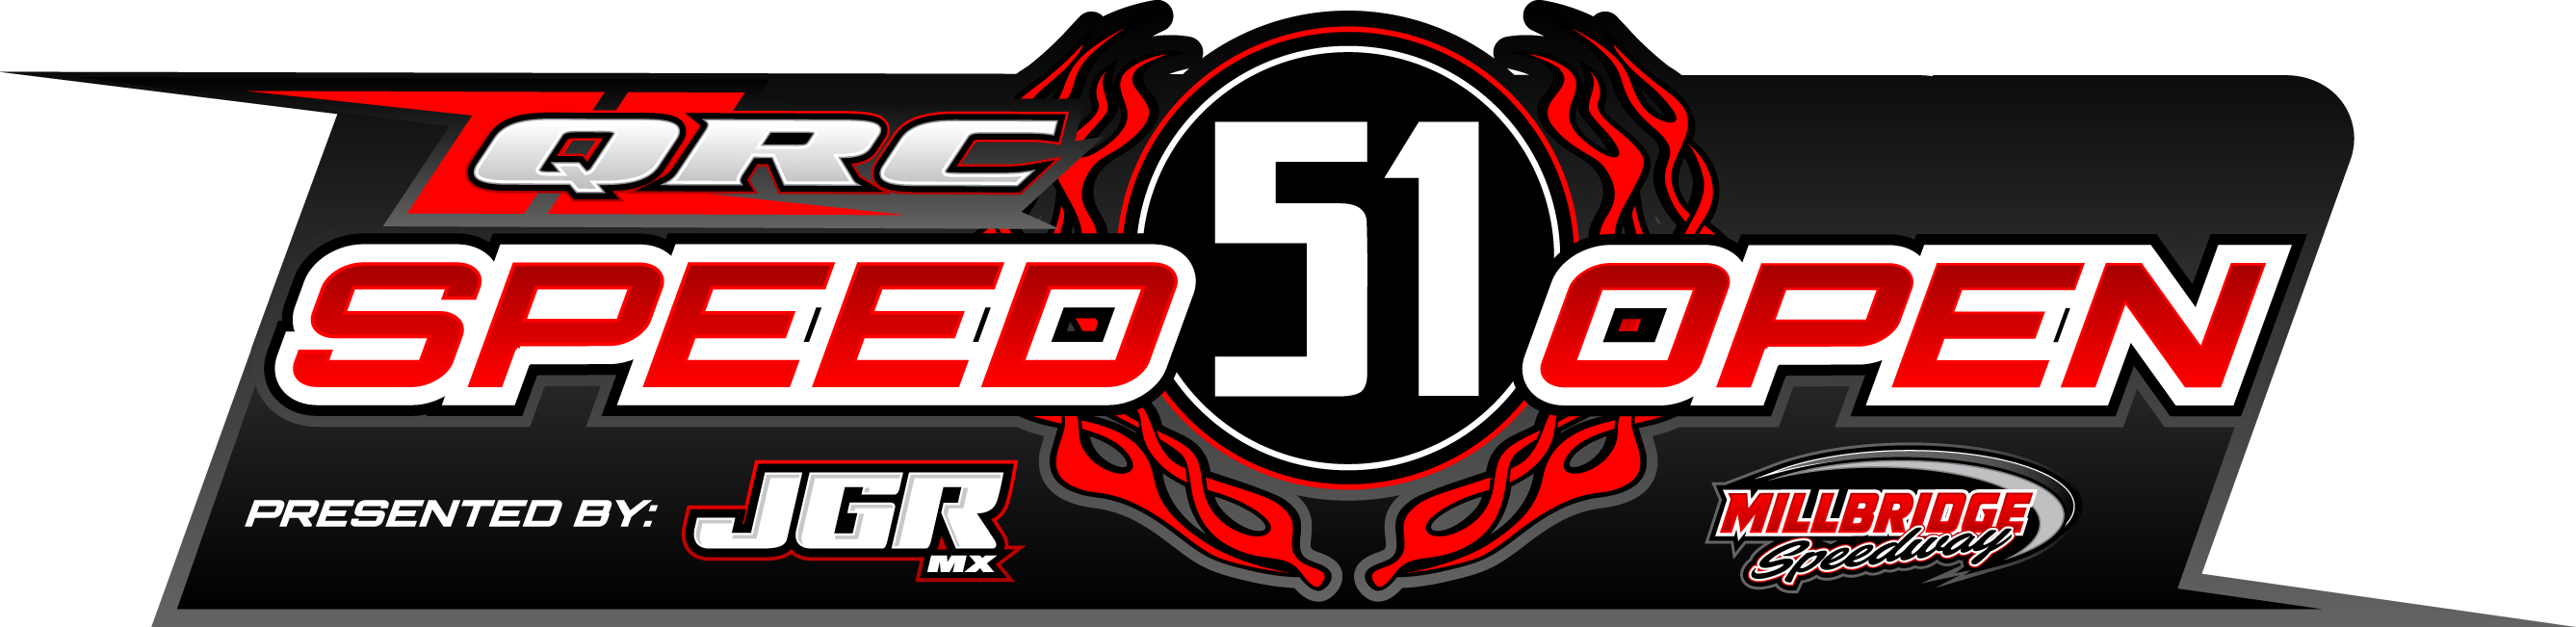 2017 QRC Karts SPEED51 Open Presented by JGRmx Registration Open